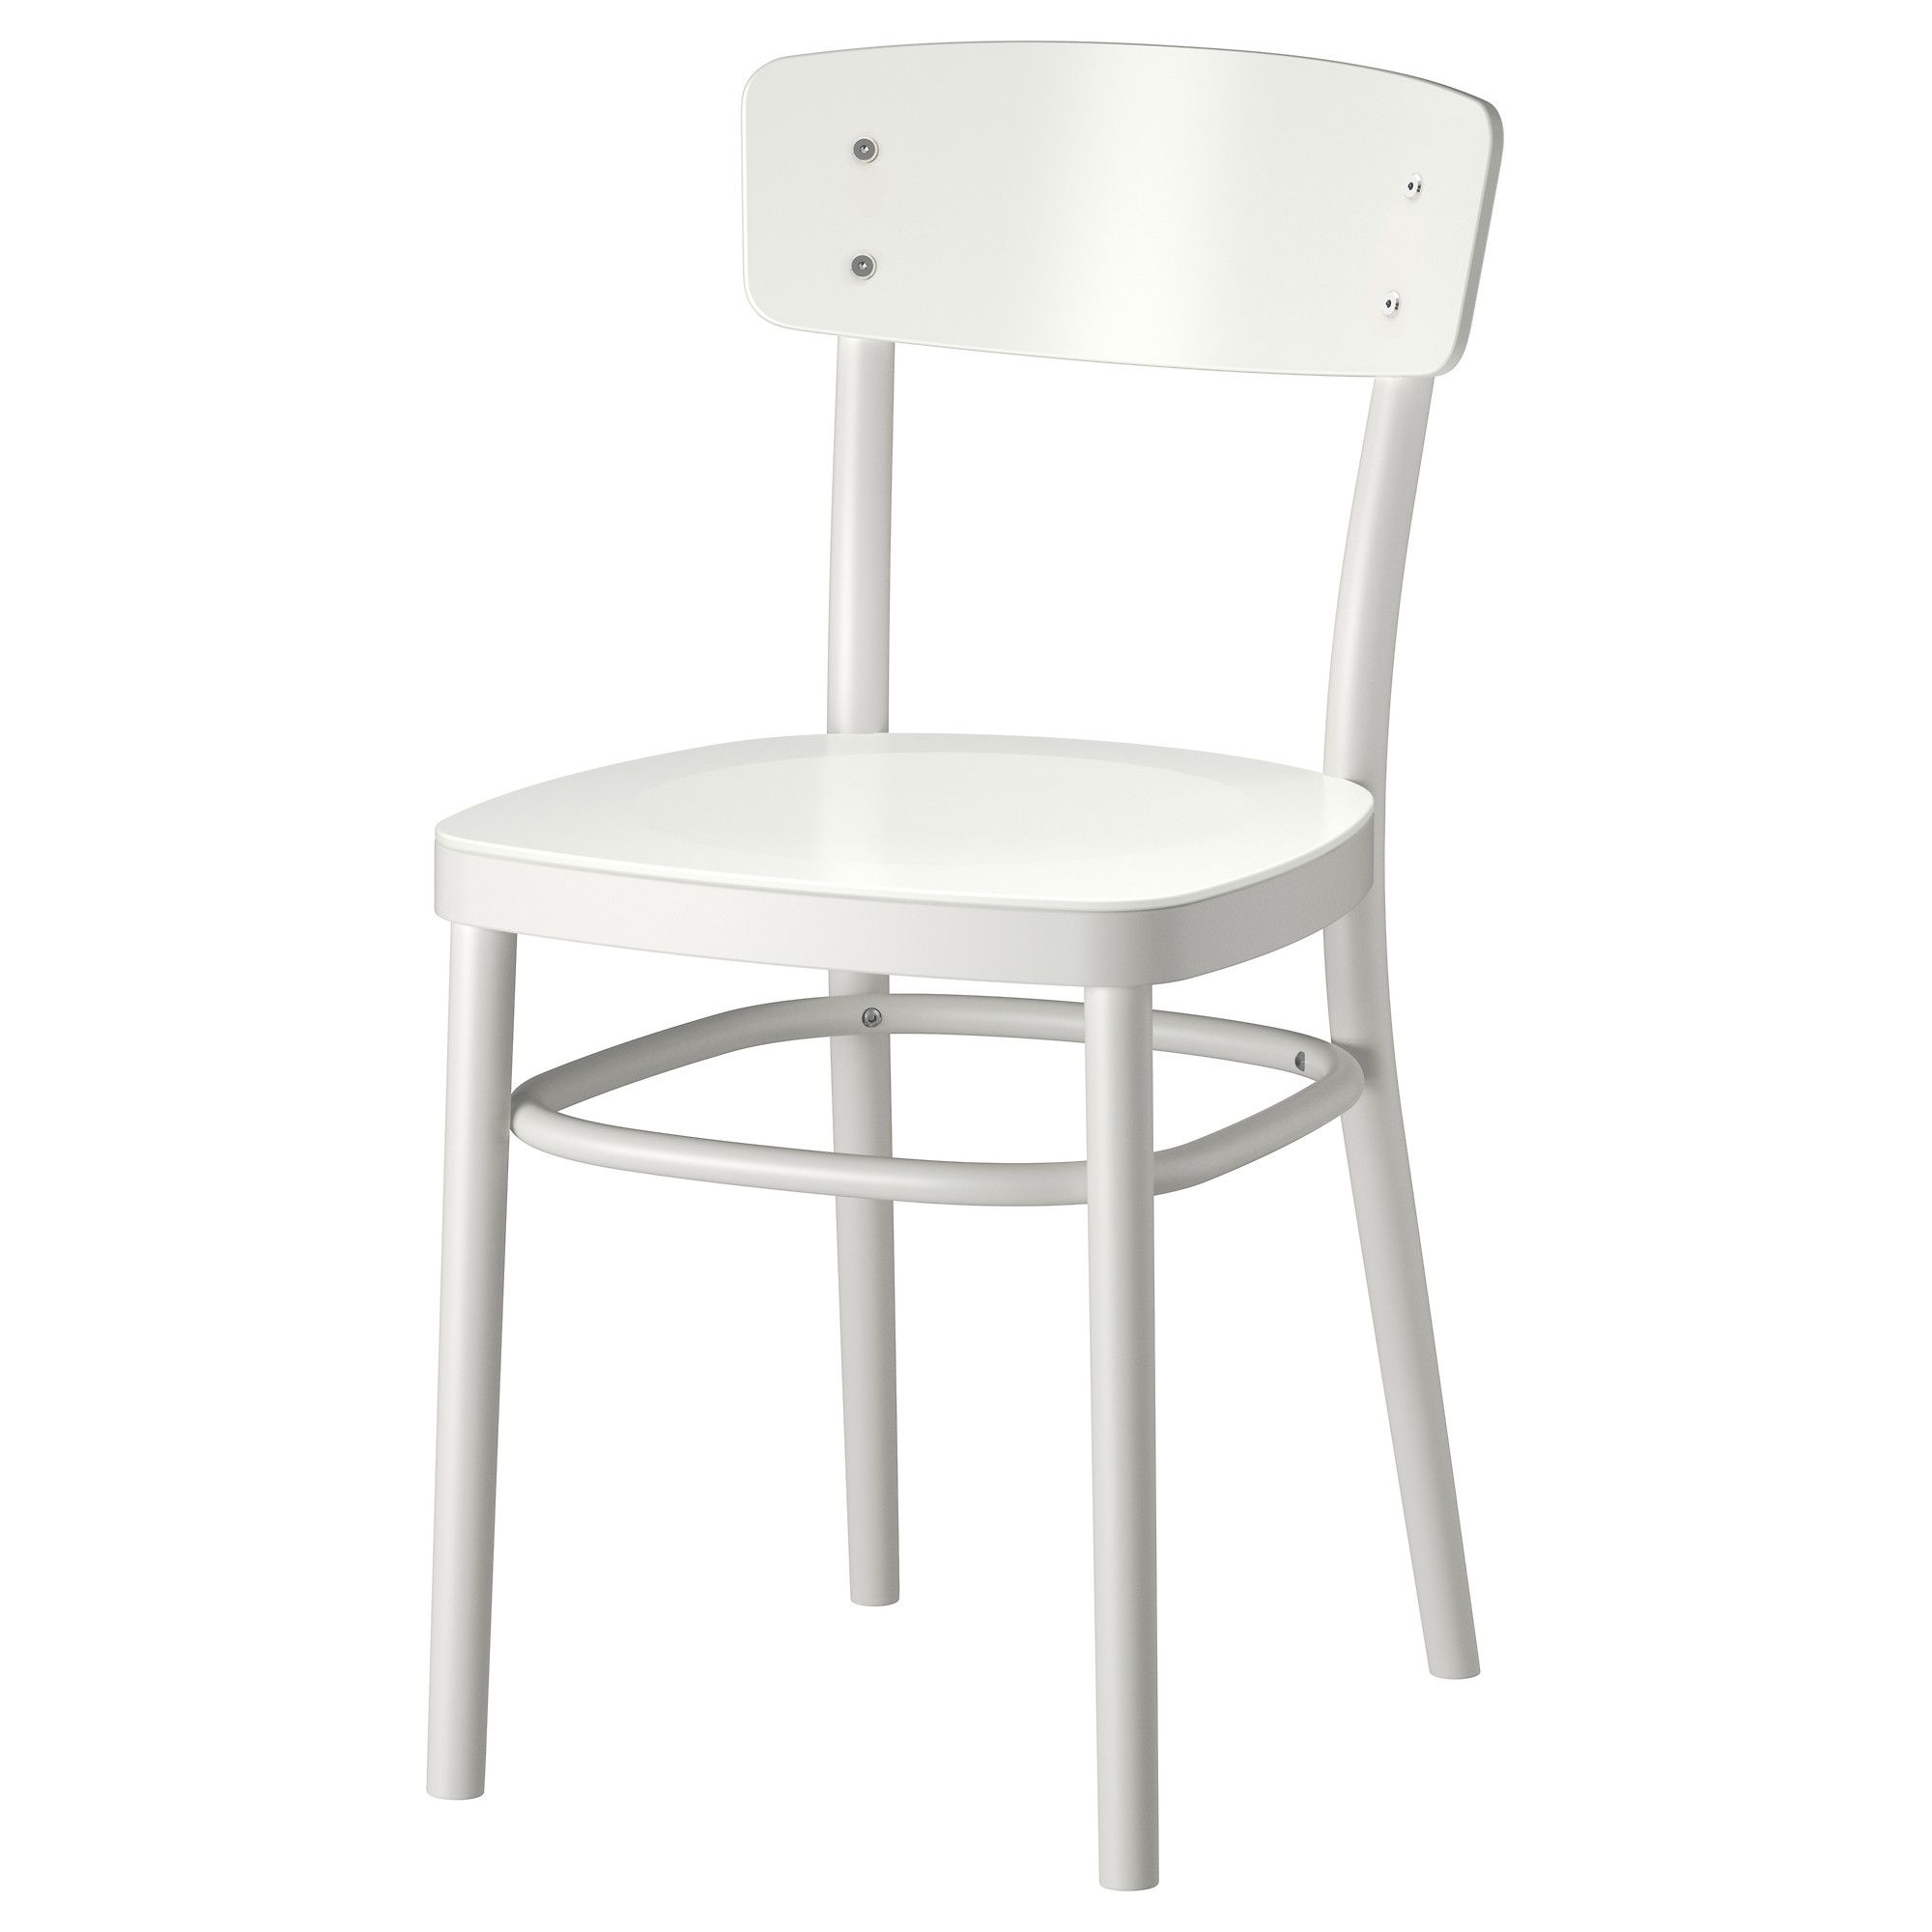 Idolf Chair Ikea To Replace The 4 Black Ones Like The